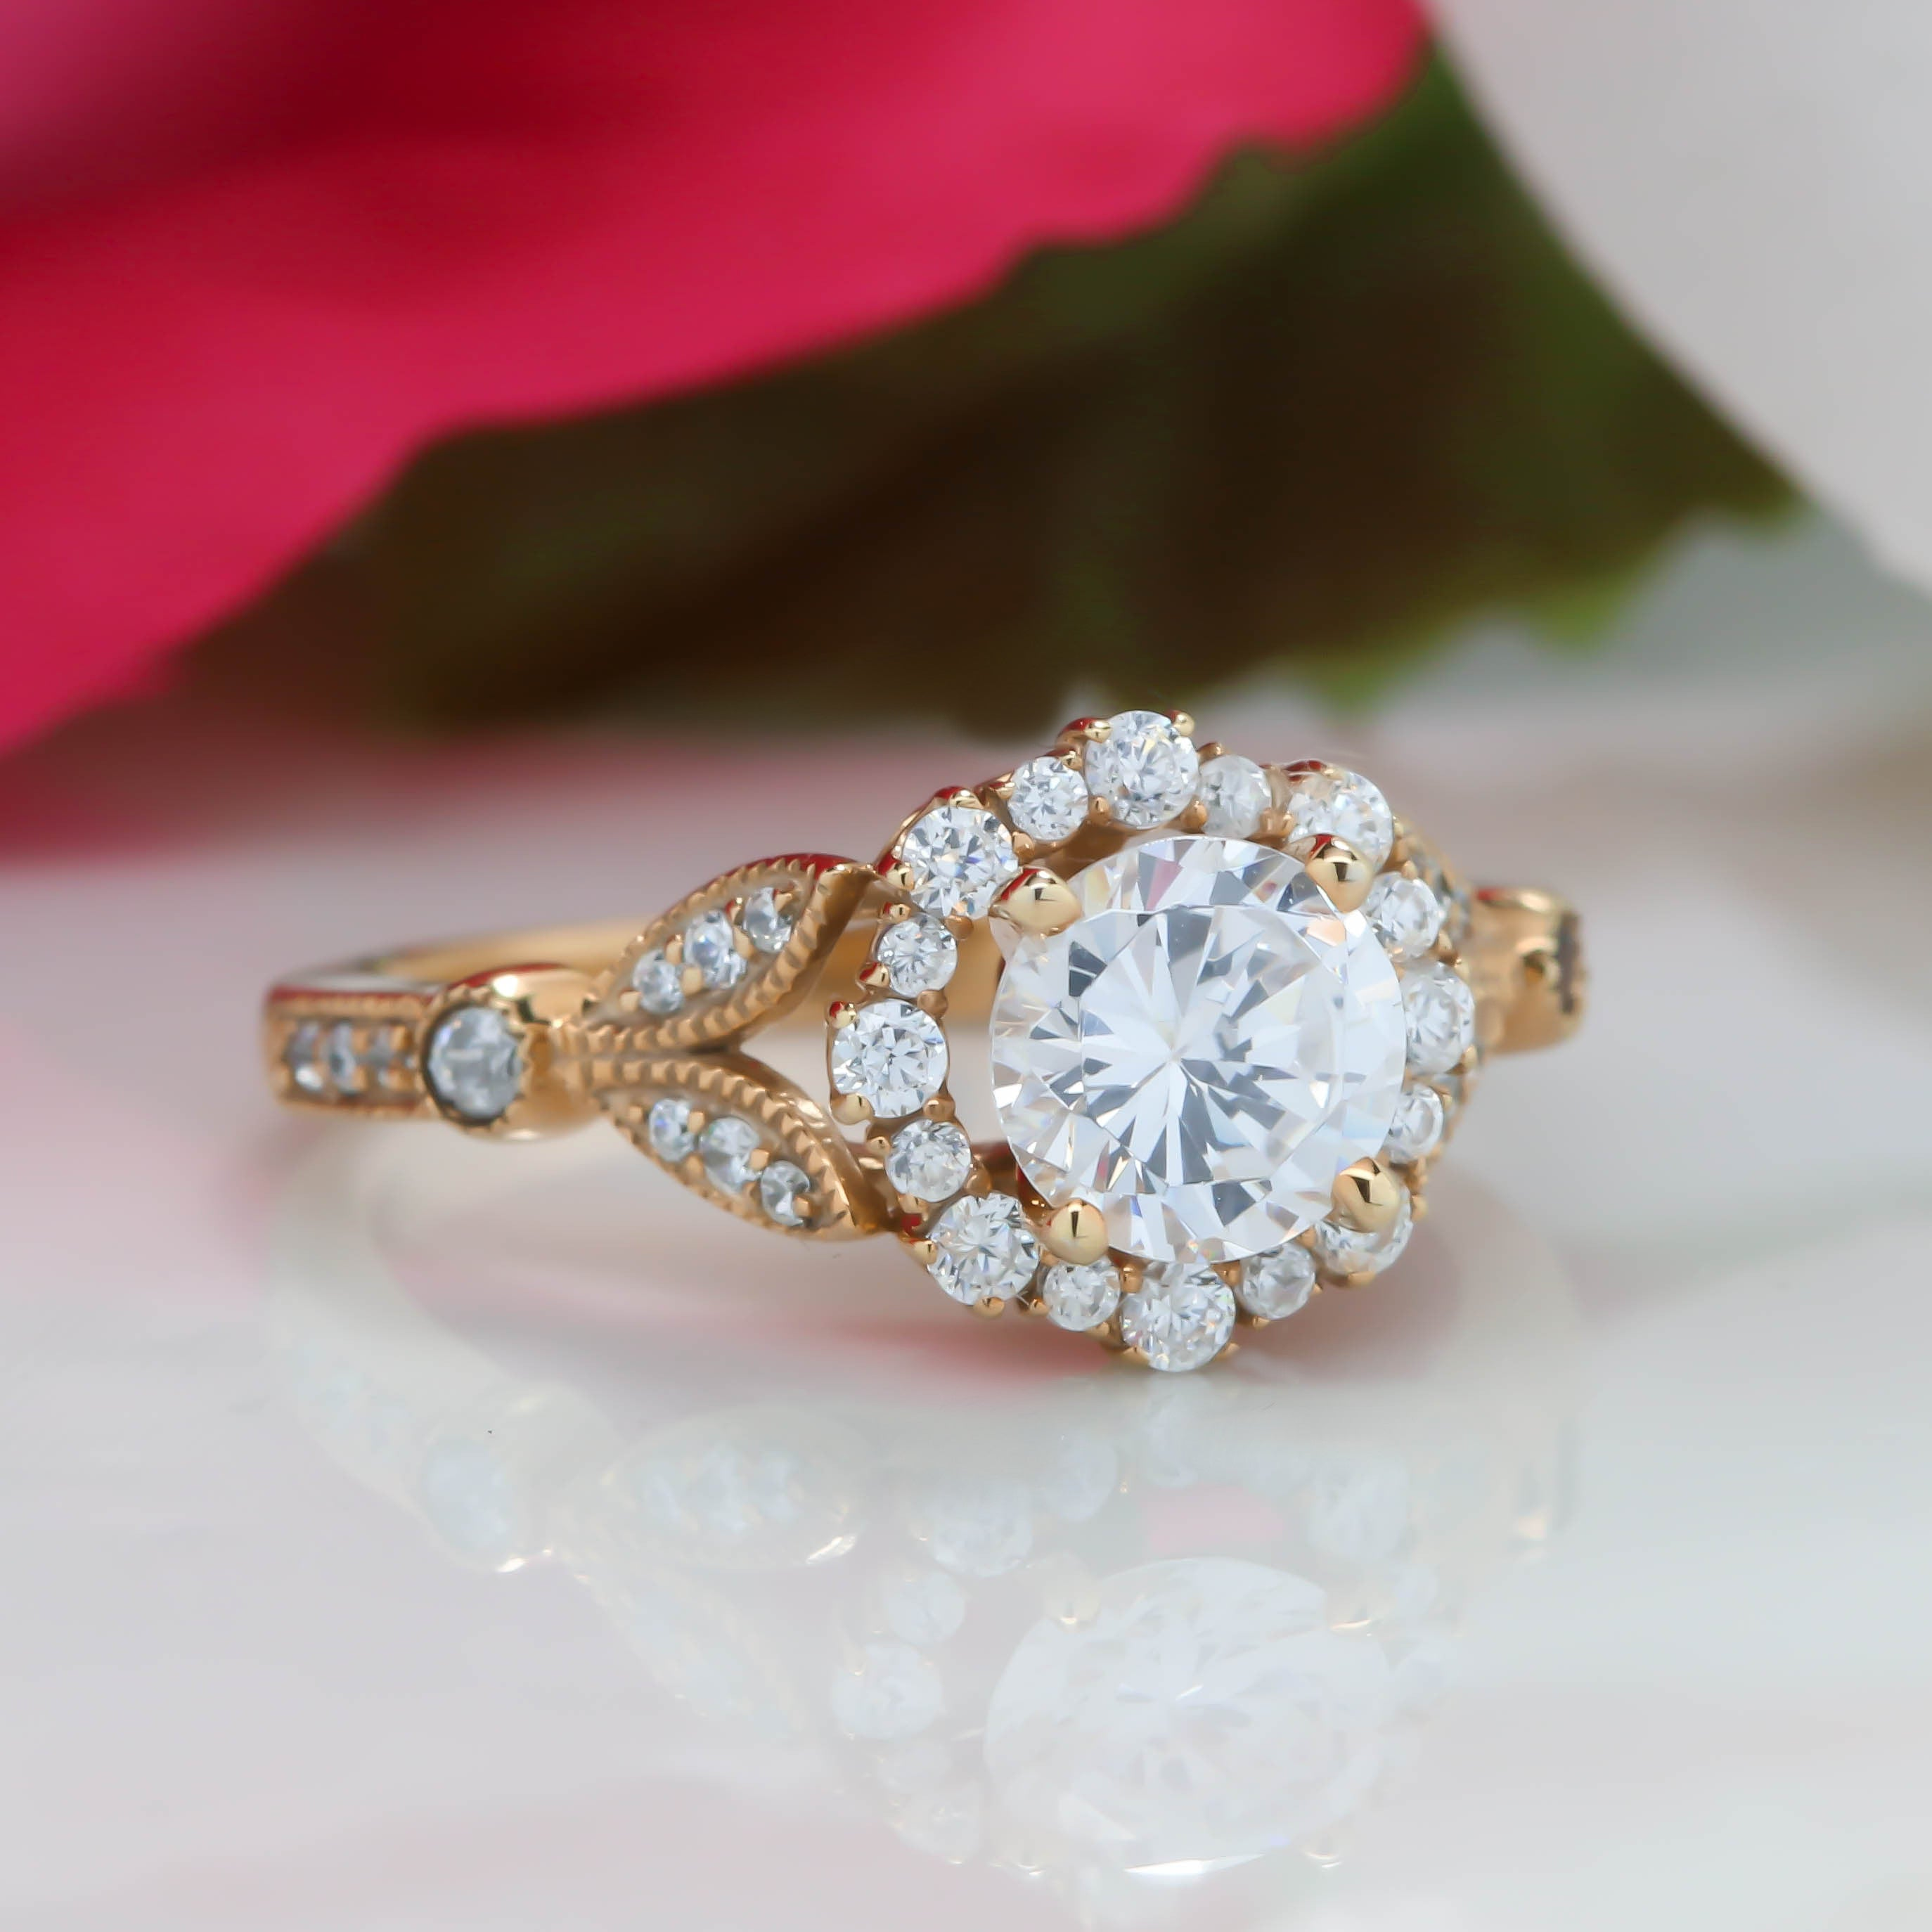 Payment 2 Vintage Floral Style Halo Diamond and Moissanite Engagement Ring - Lilly RP